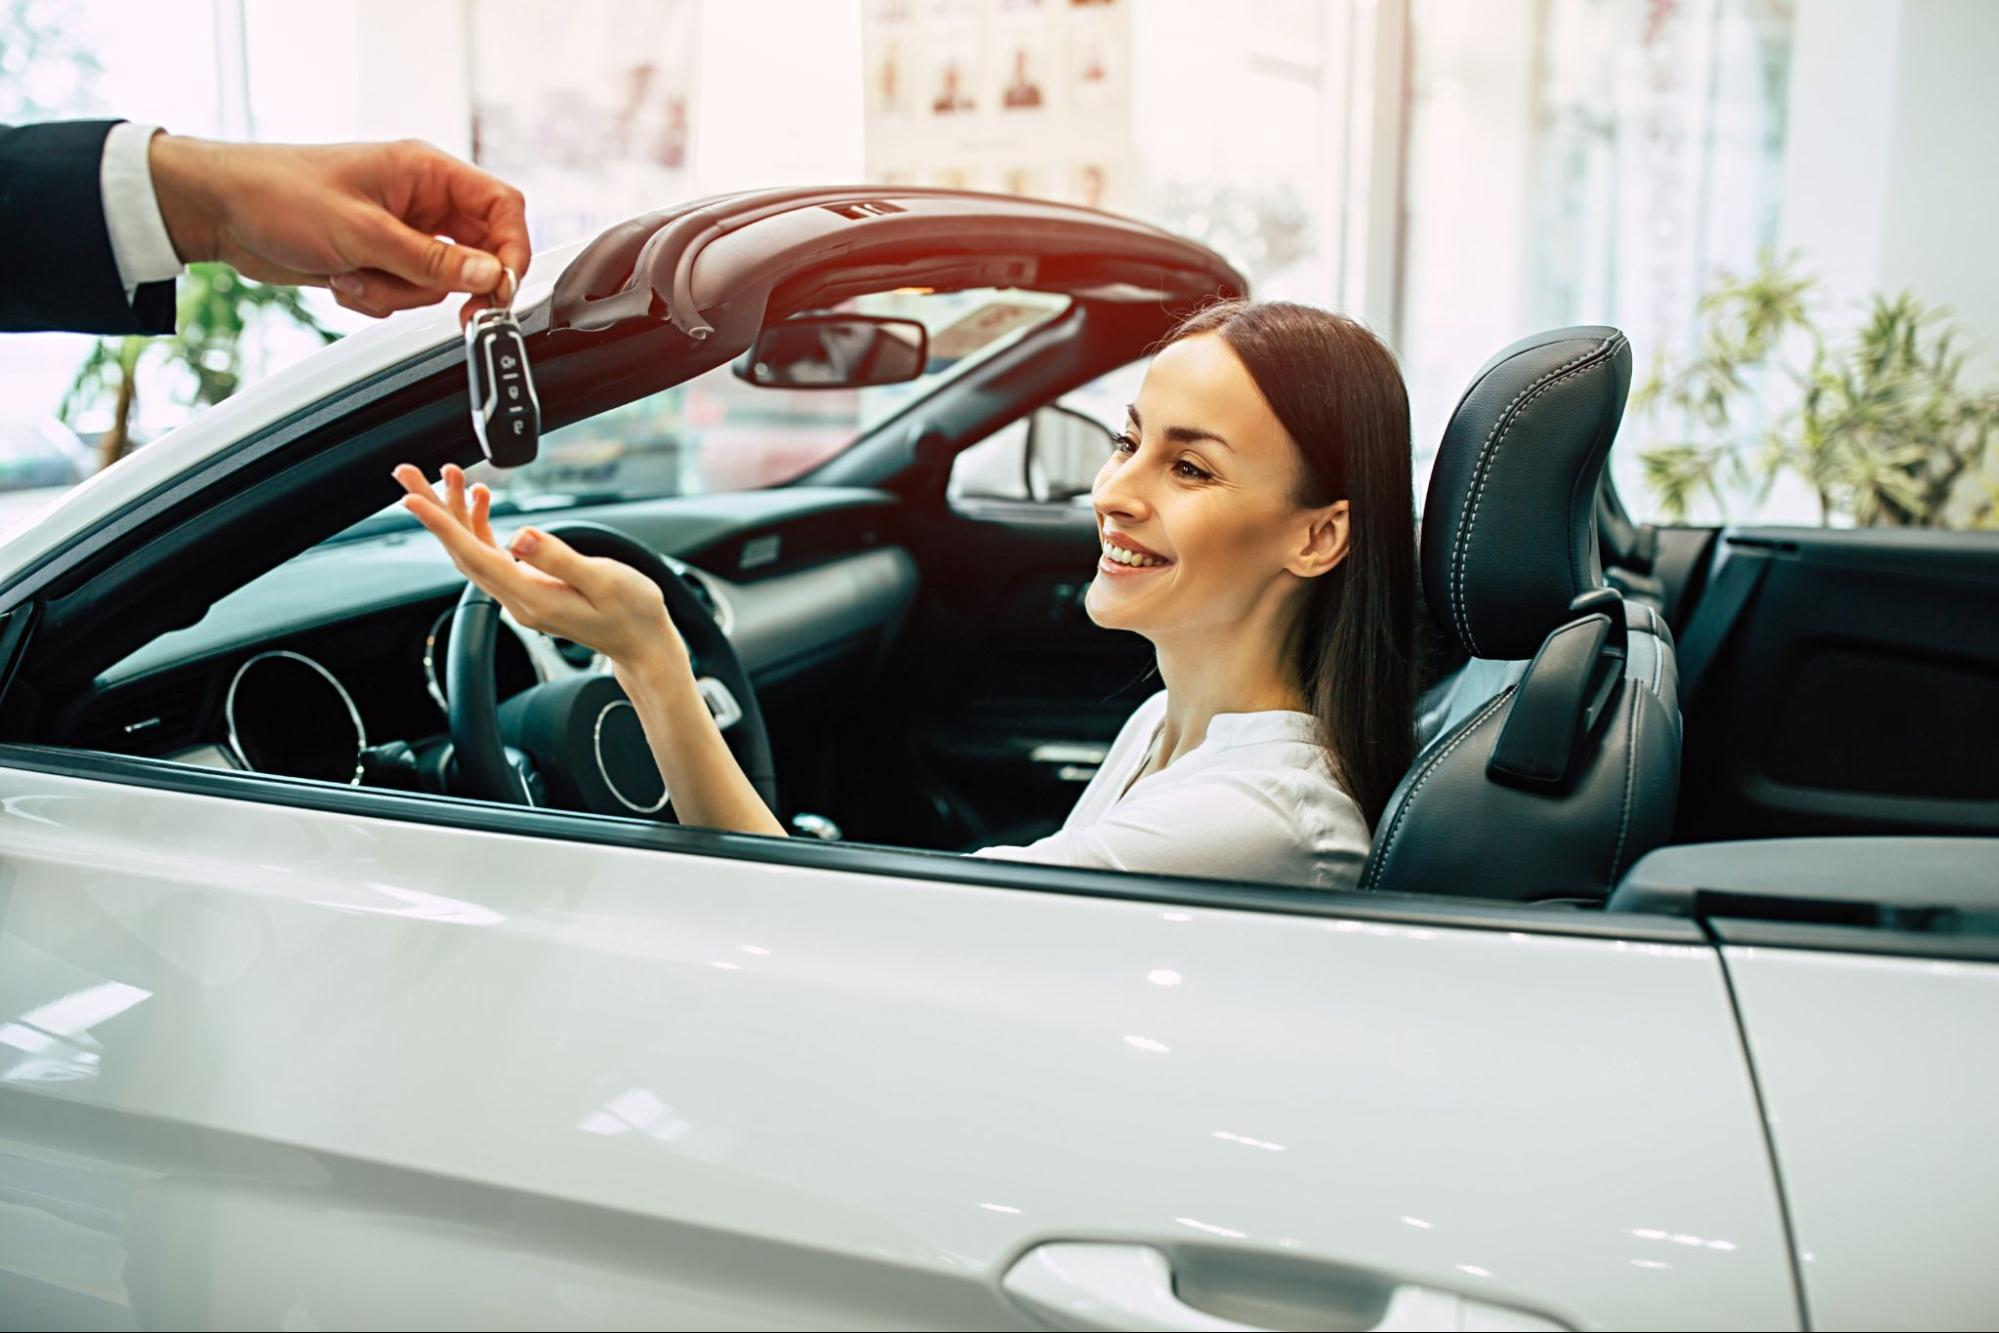 Depreciation: A woman sits in a brand-new car while the salesperson hands her the key